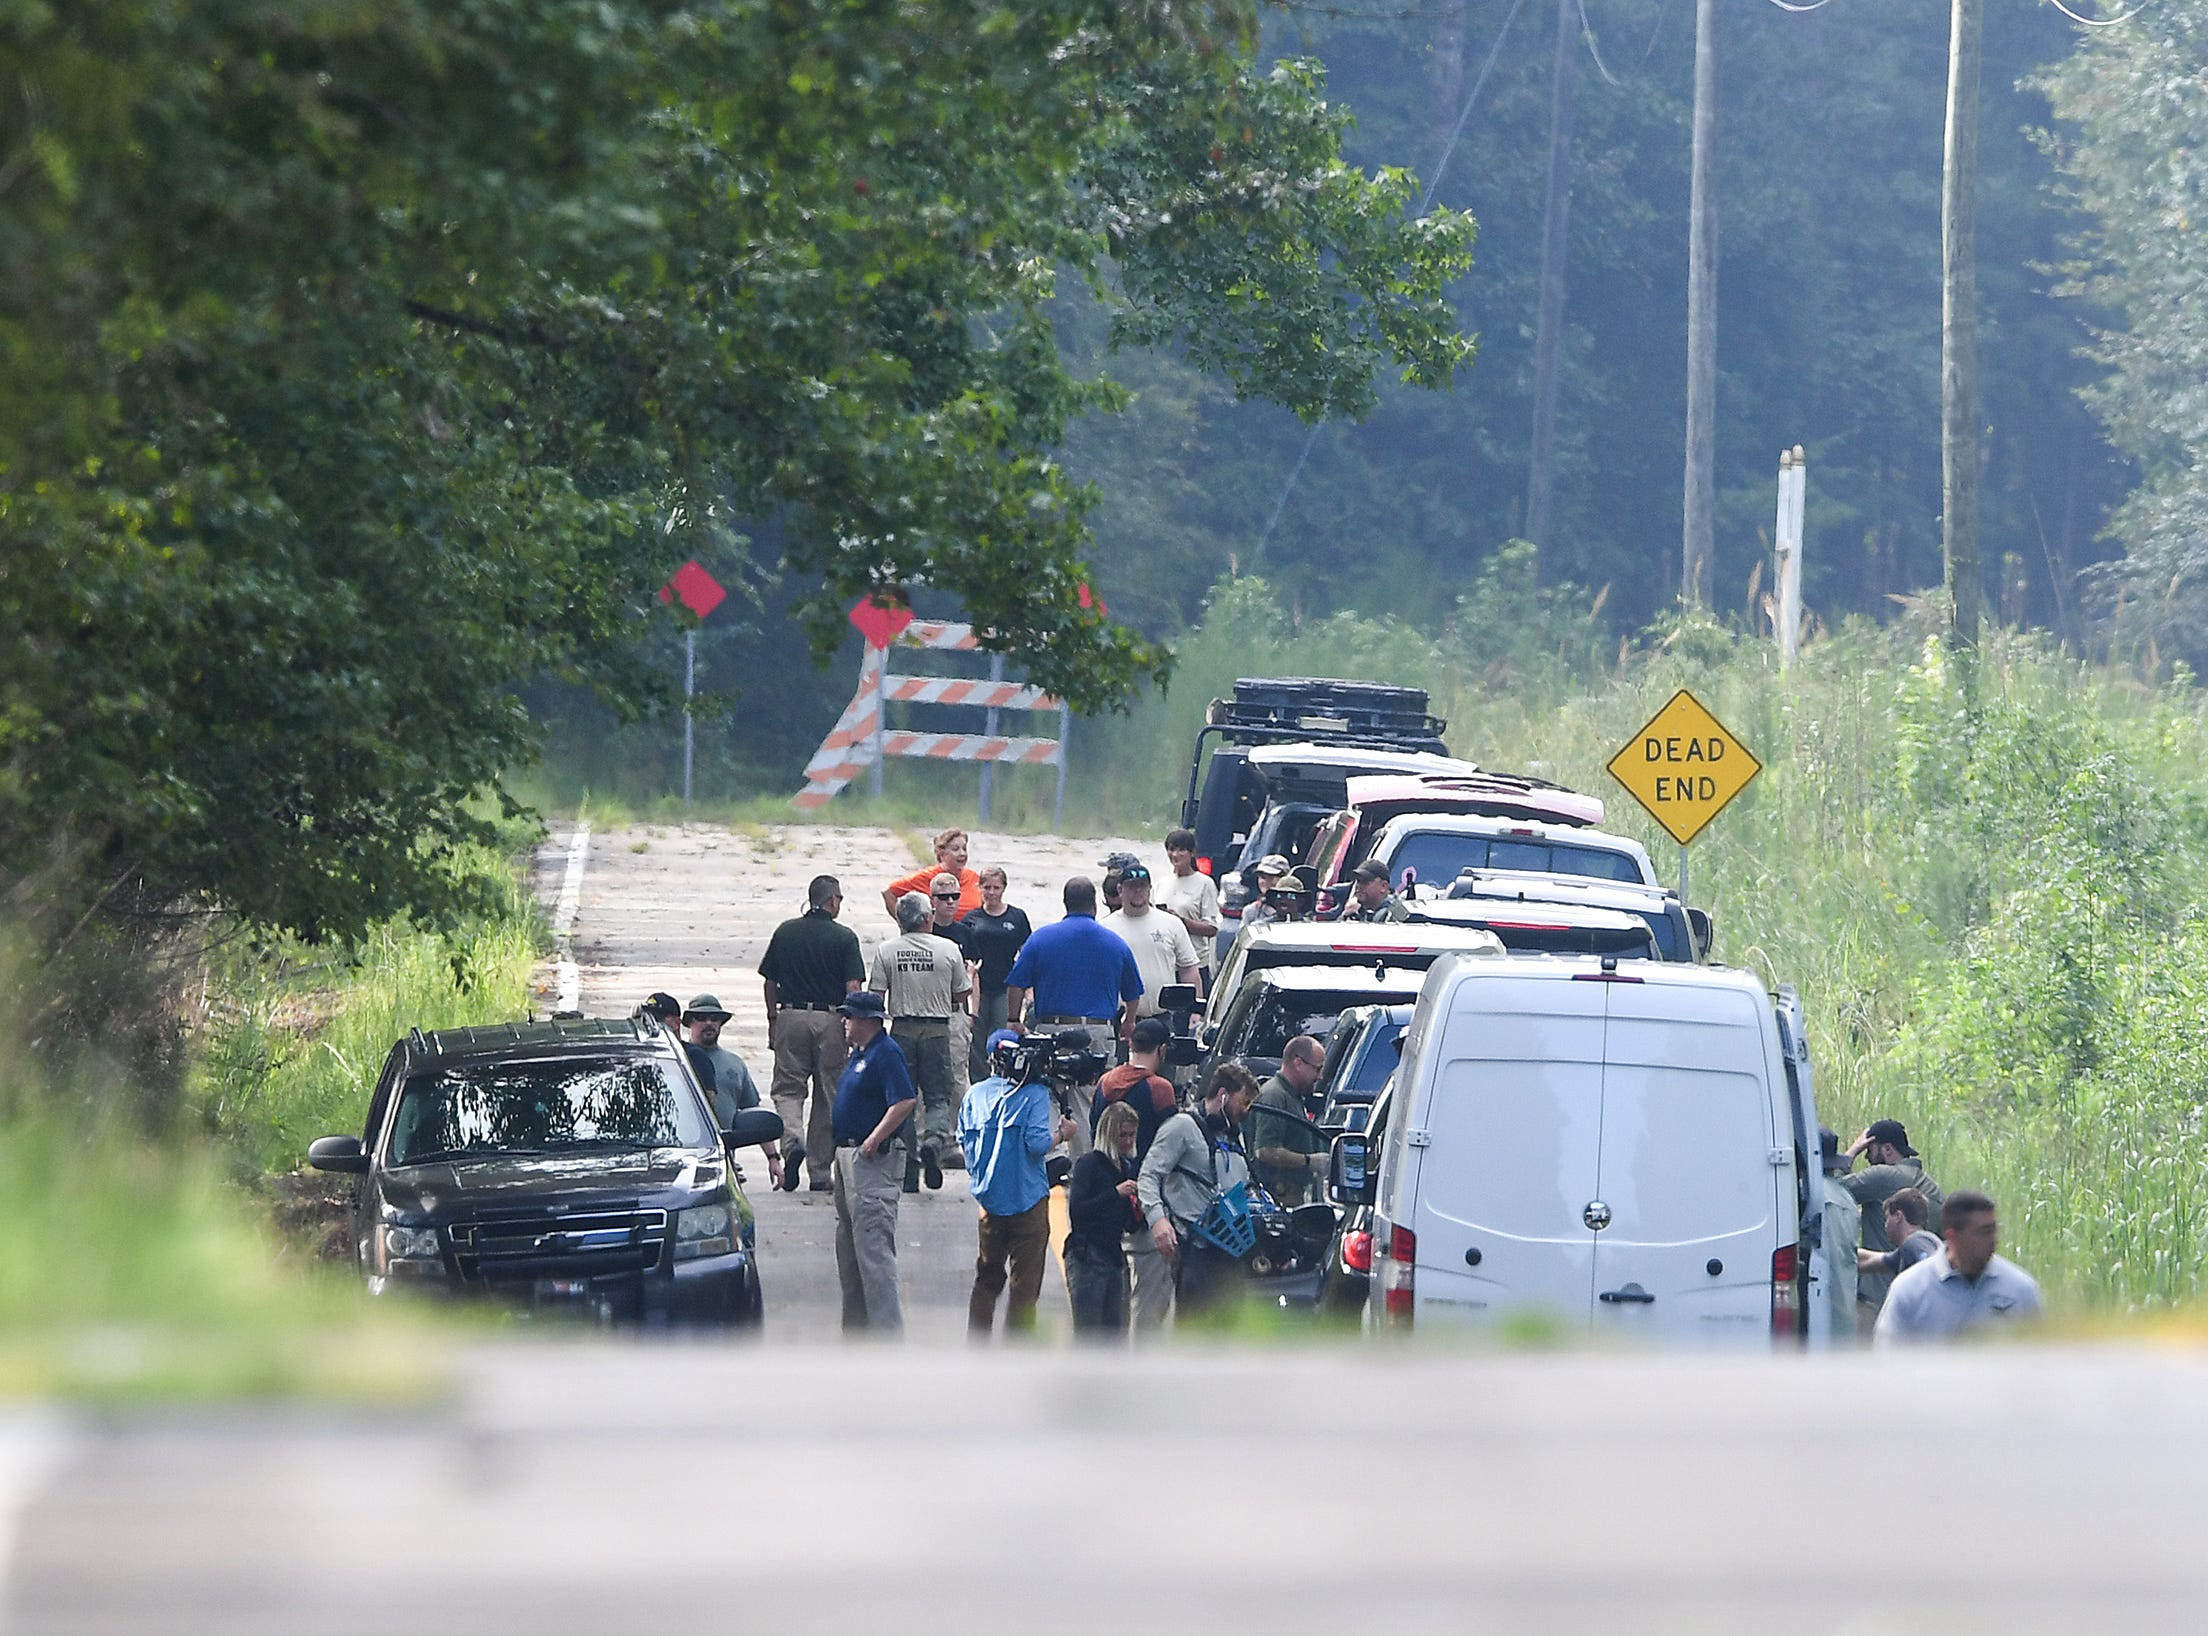 A documentary film crew arrives on the scene in Enoree of I-26 where Spartanburg County investigators, after receiving a tip, search for additional homicide victims of serial killer Todd Kohlhepp Wednesday, August 22, 2018.